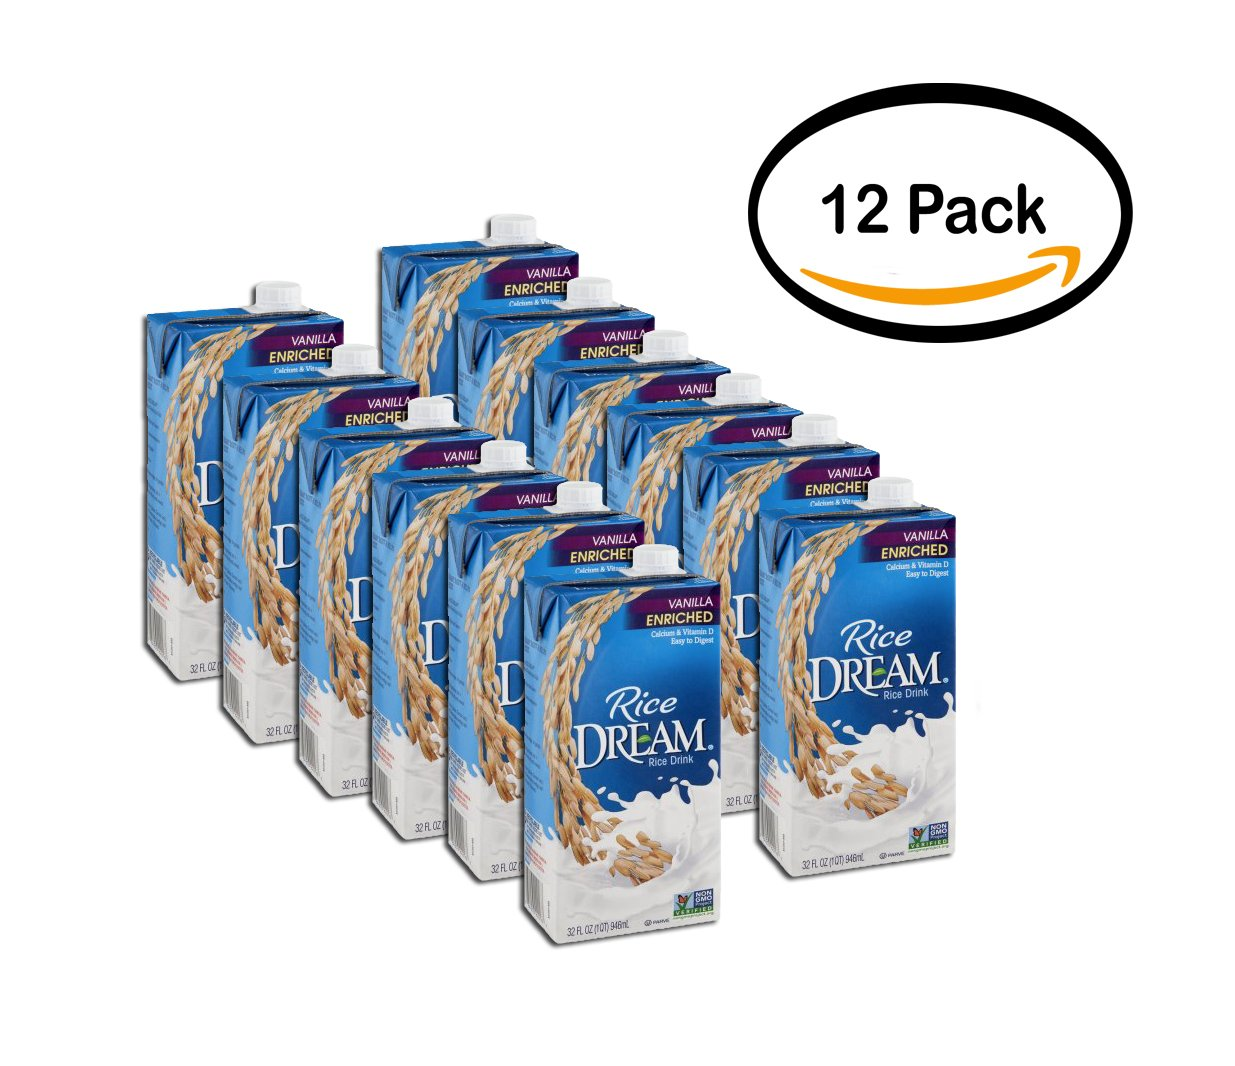 PACK OF 12 - Rice Dream Rice Drink Enriched Vanilla, 32.0 FL OZ